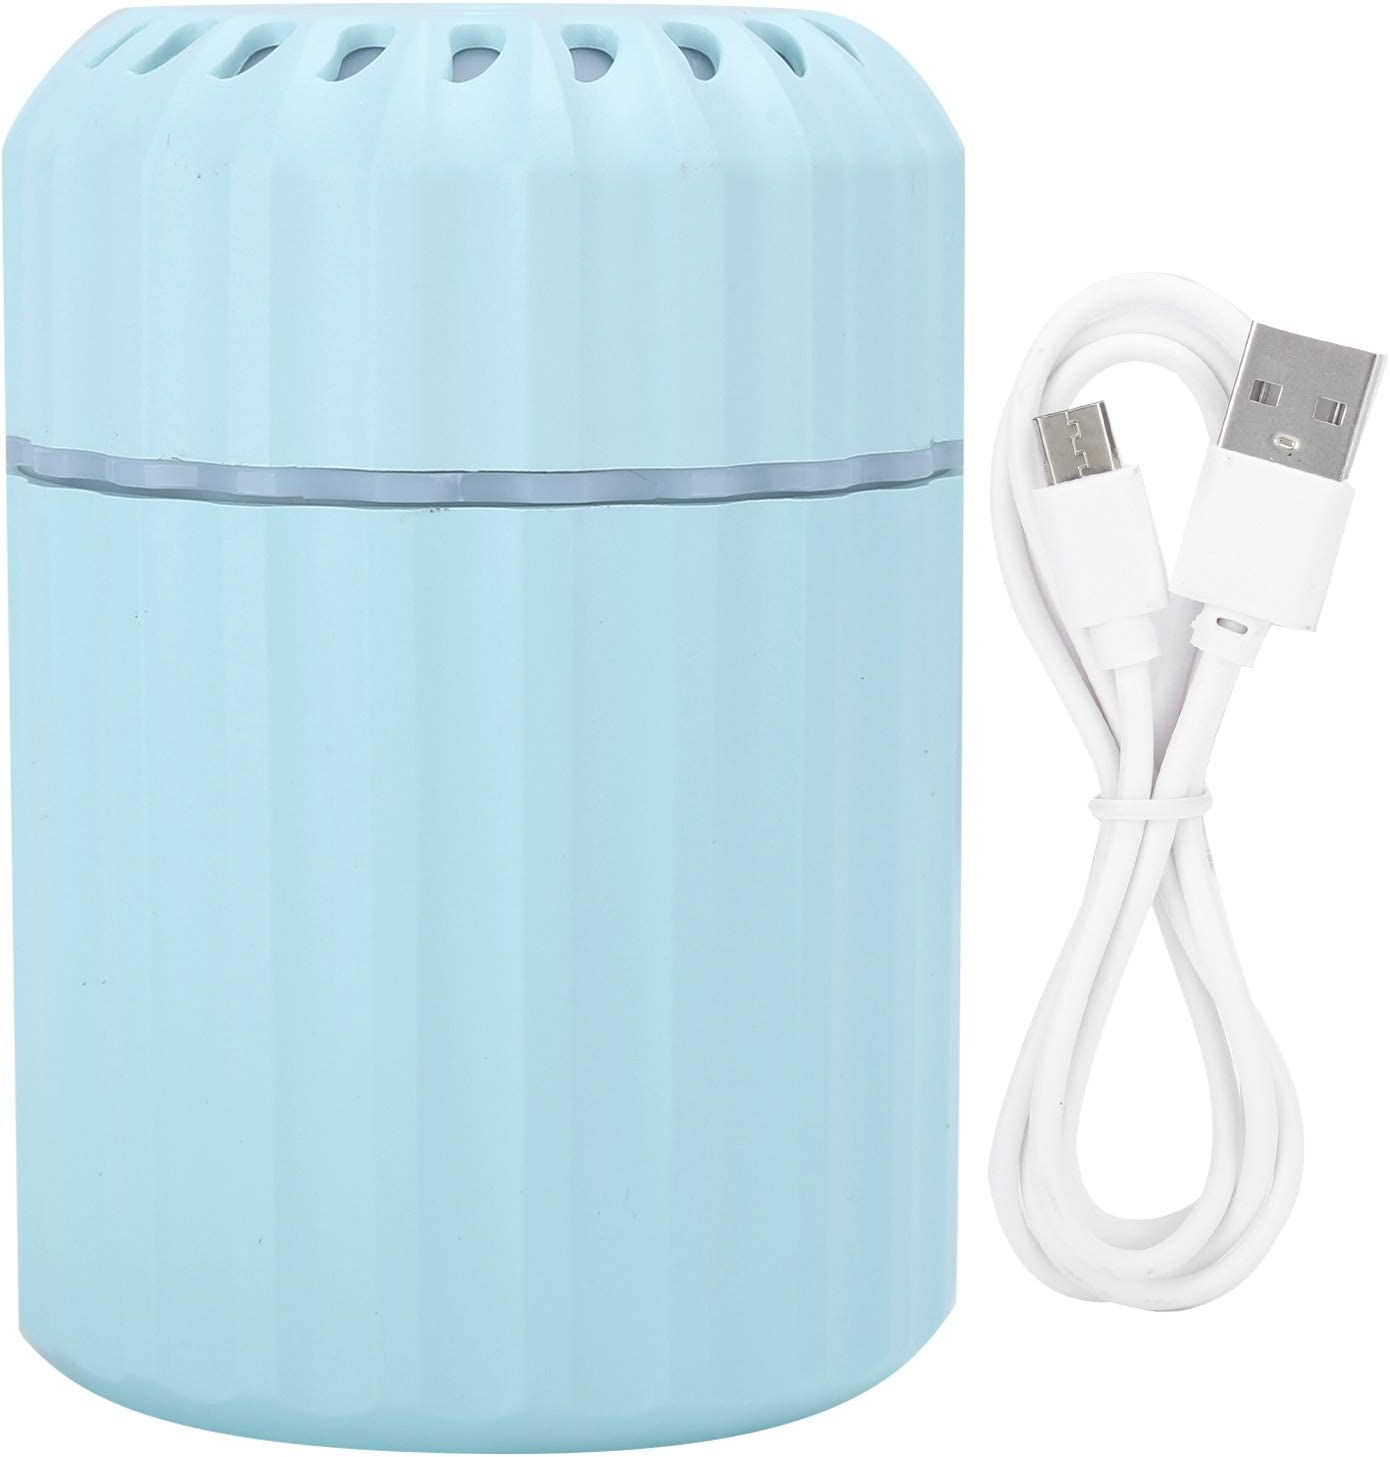 Humidifier-Portable Mini Humidifier-USB Humidifie Branded goods Free shipping New Powered Silent